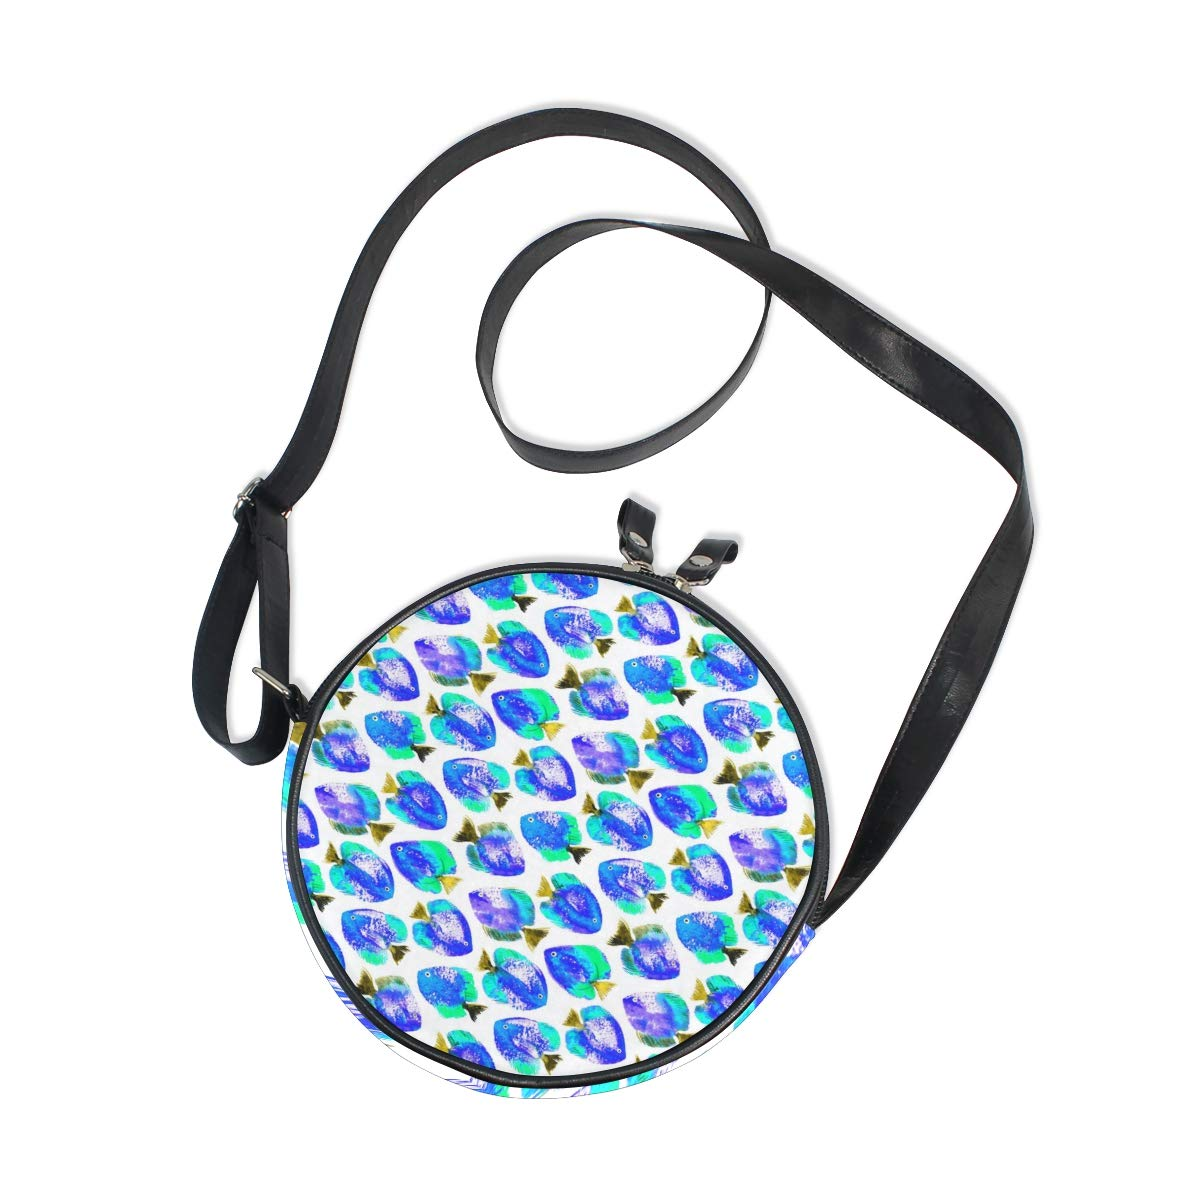 Crossbody Bag Watercolor Discus Pmage Womens Casual Phone Pouch Round Shoulder Bag